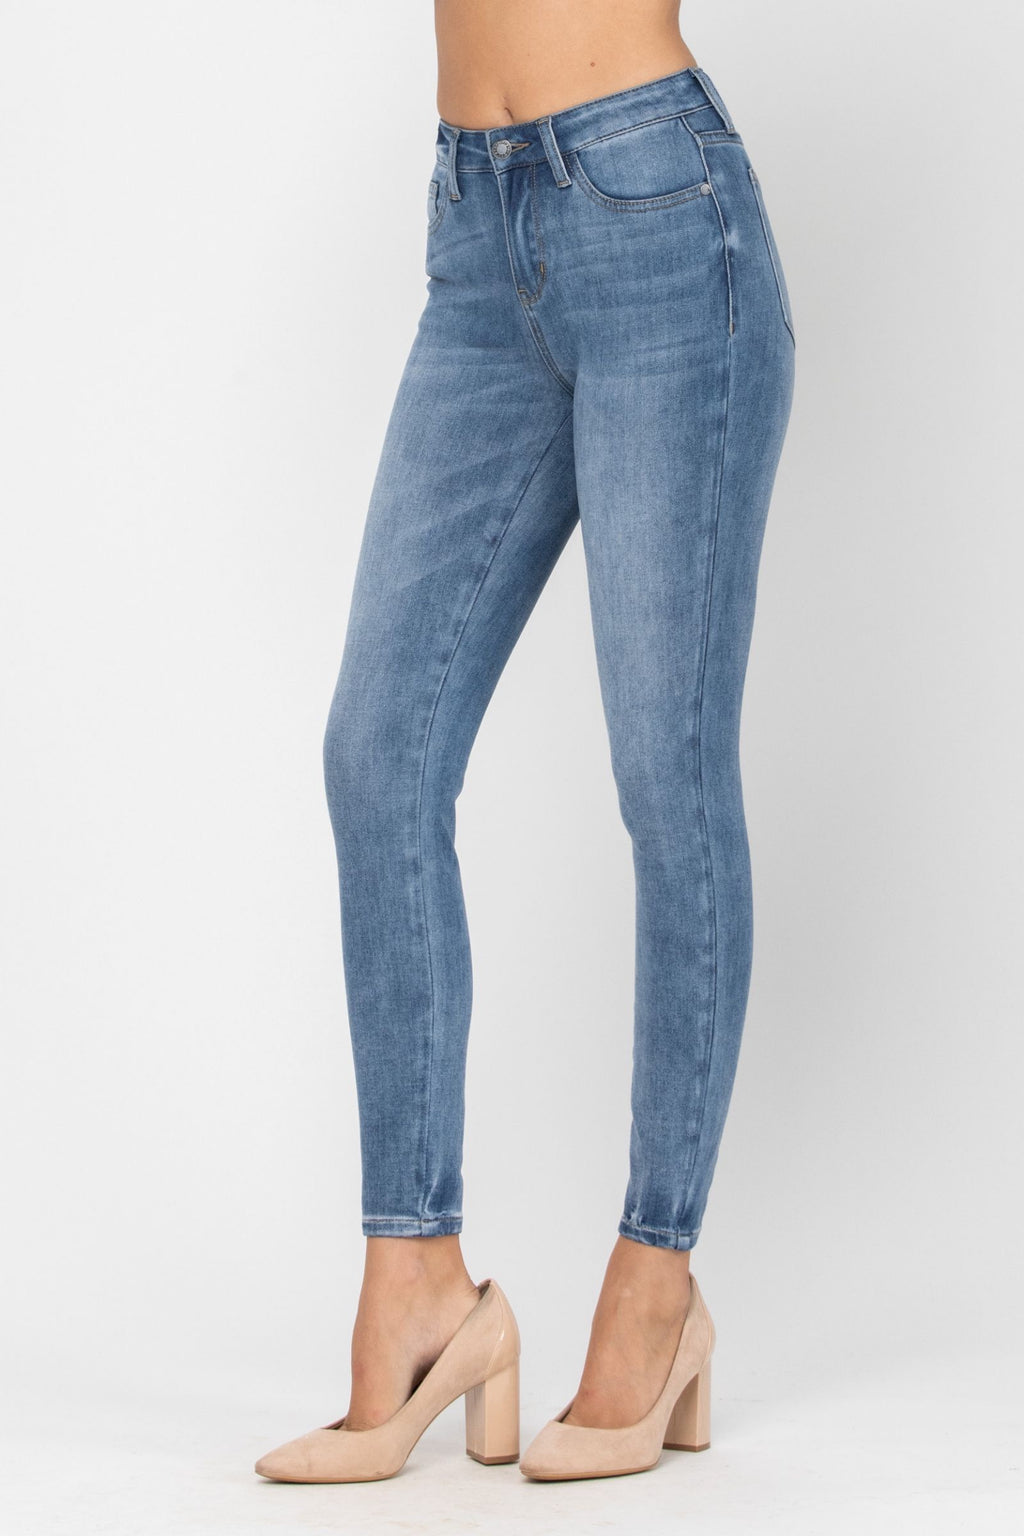 Judy Blue ThermaDenim Skinny Fit | Medium Wash - FINAL SALE